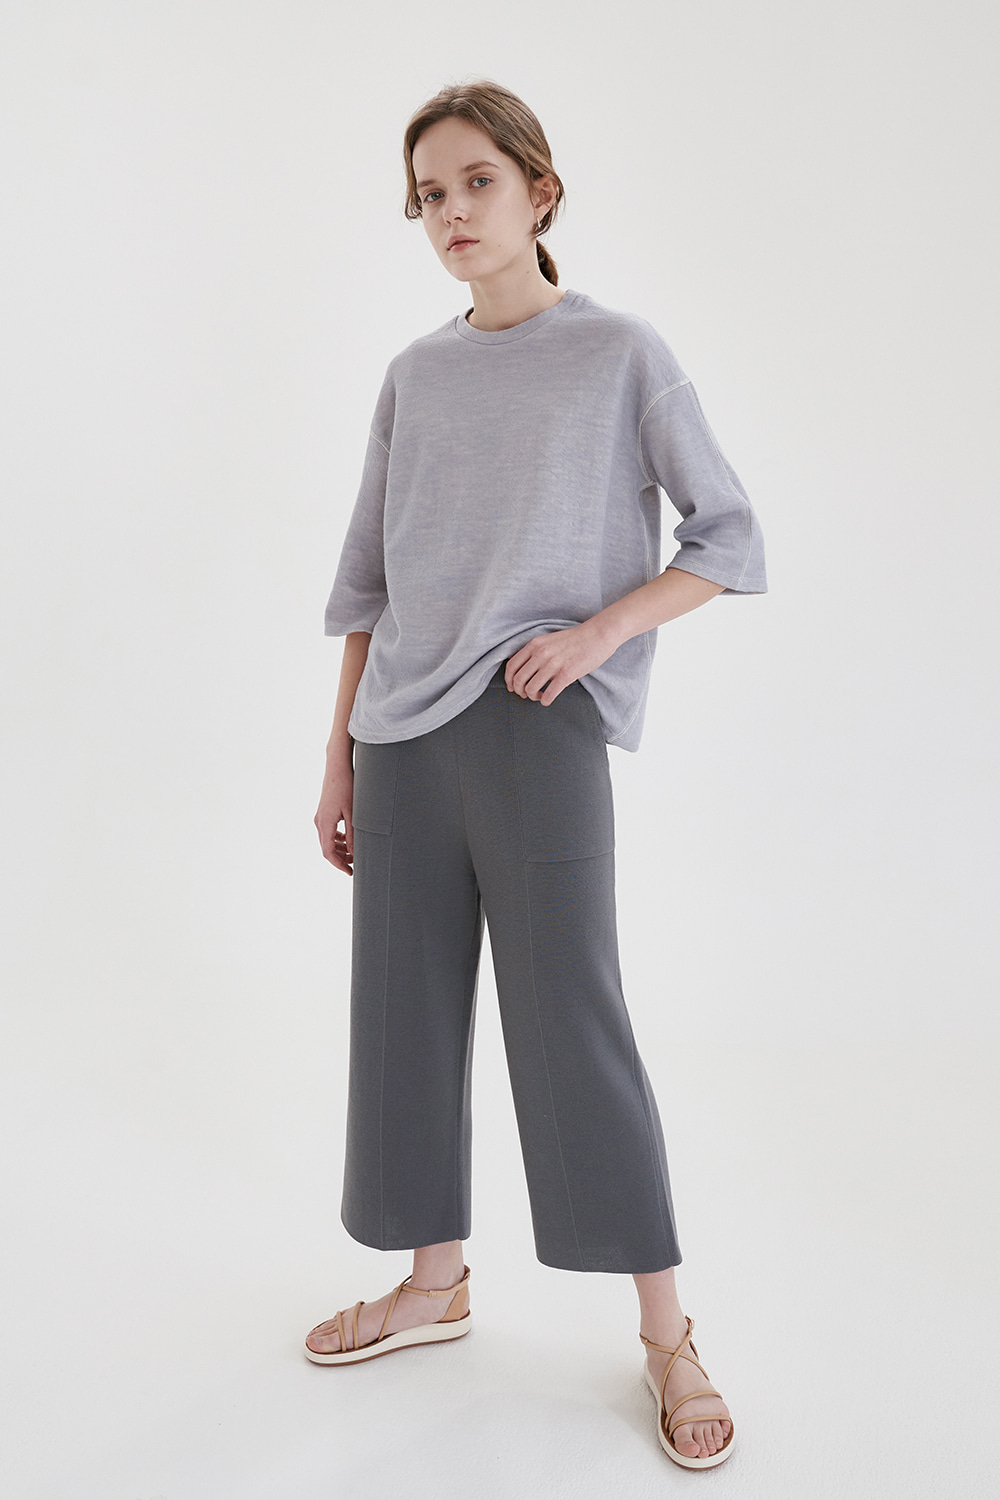 2 pockets knit pant